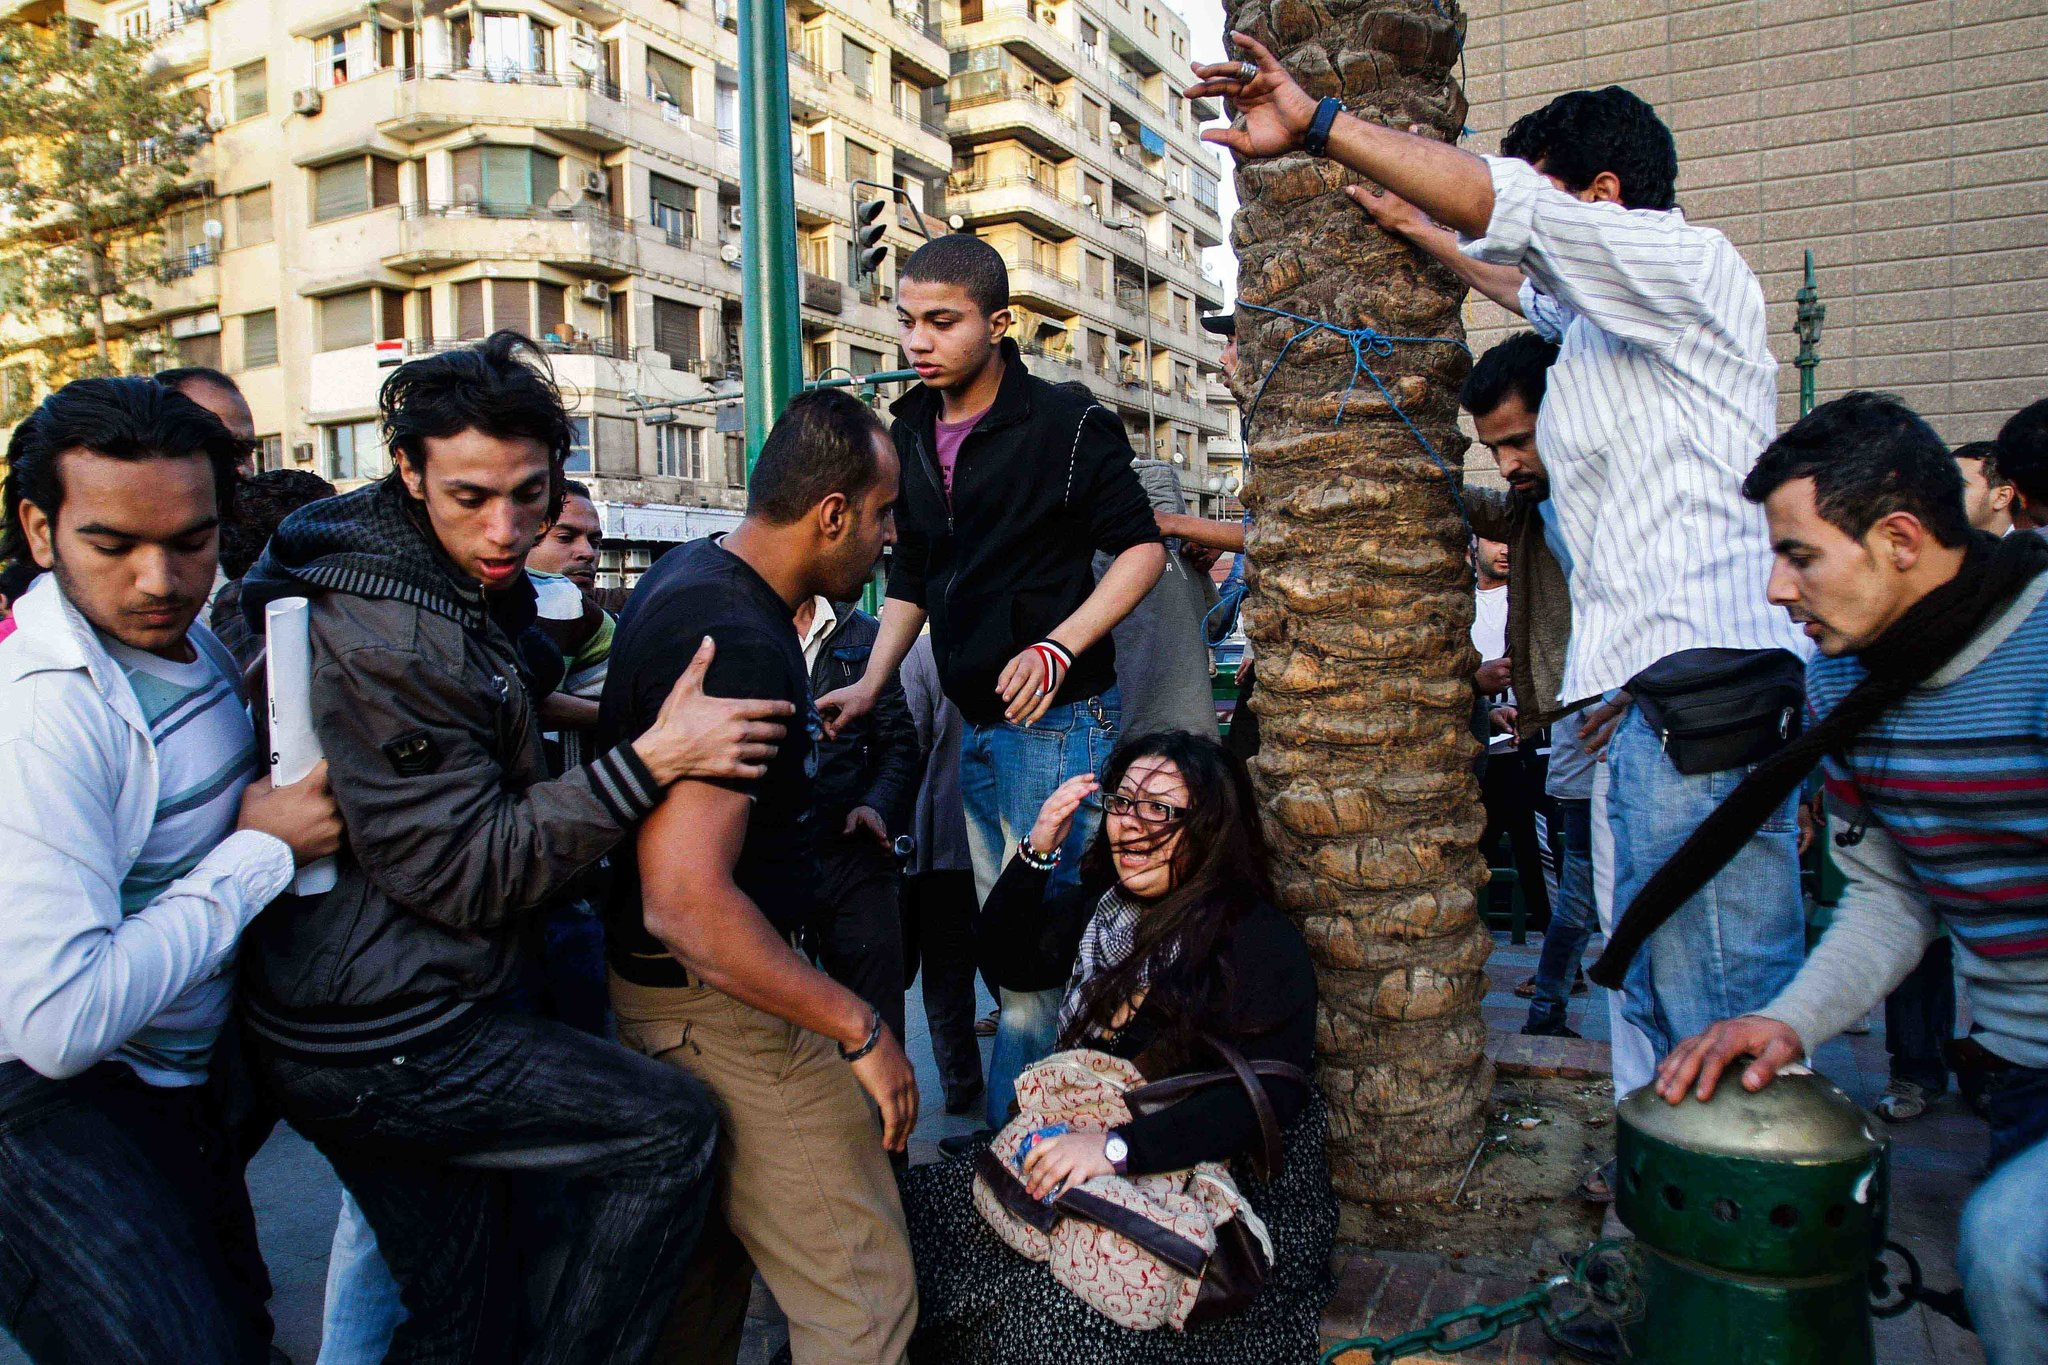 An Egyptian woman was assaulted by several men in Tahrir Square during a march for International Women's Day in March 2011. Credit: Eman Helal